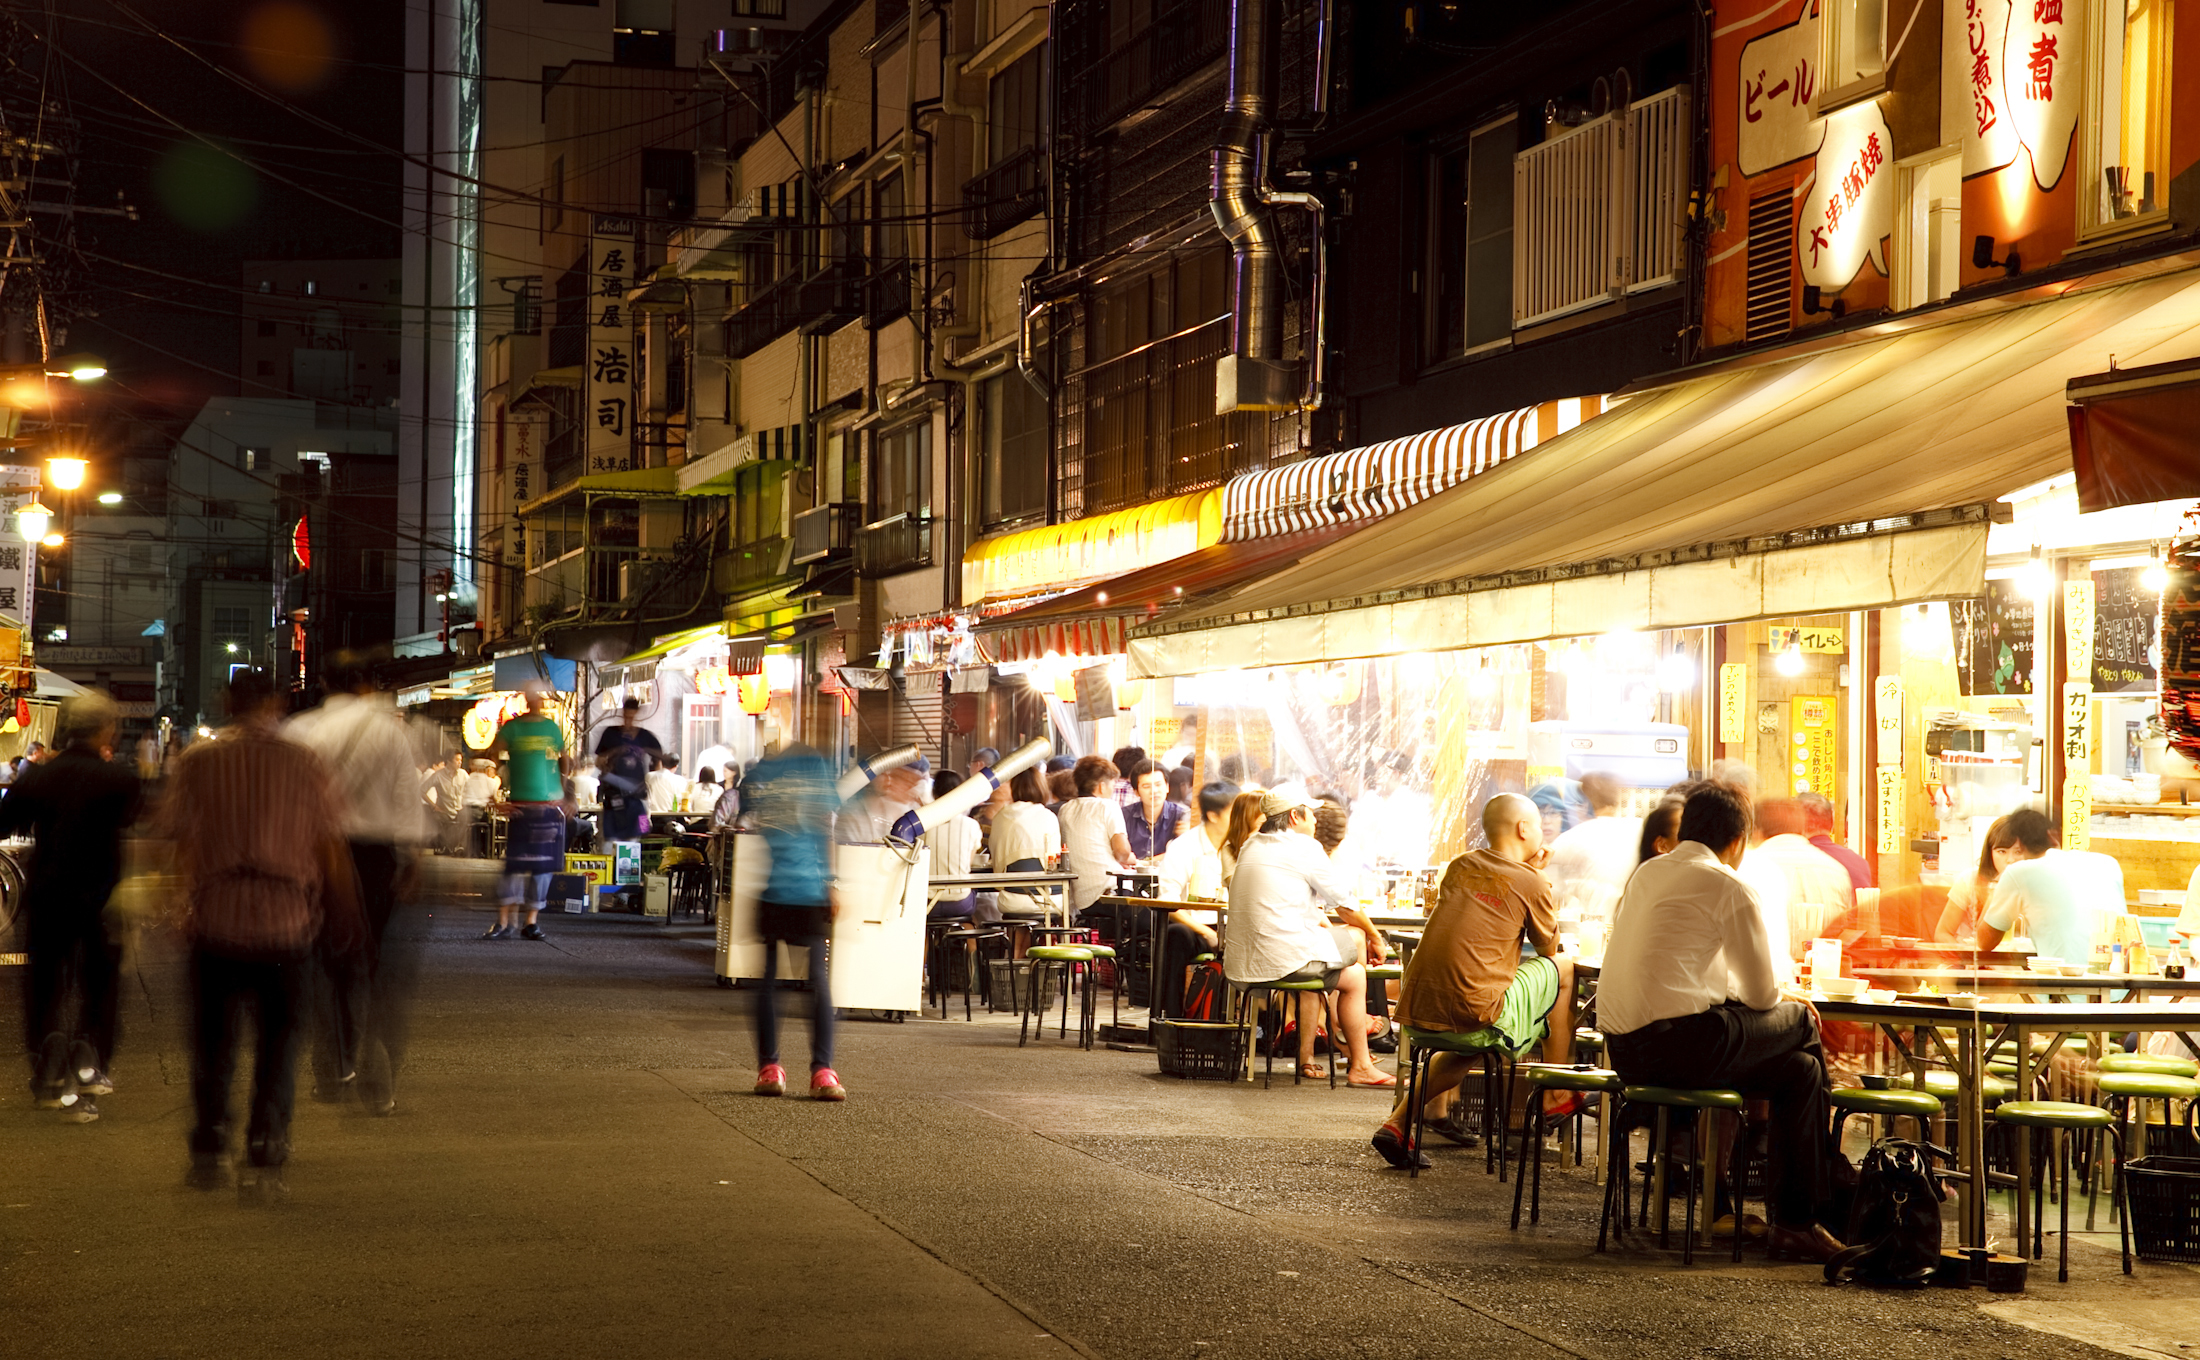 There's more to Asakusa than Sensoji and the Skytree – find the best things to do with our complete guide